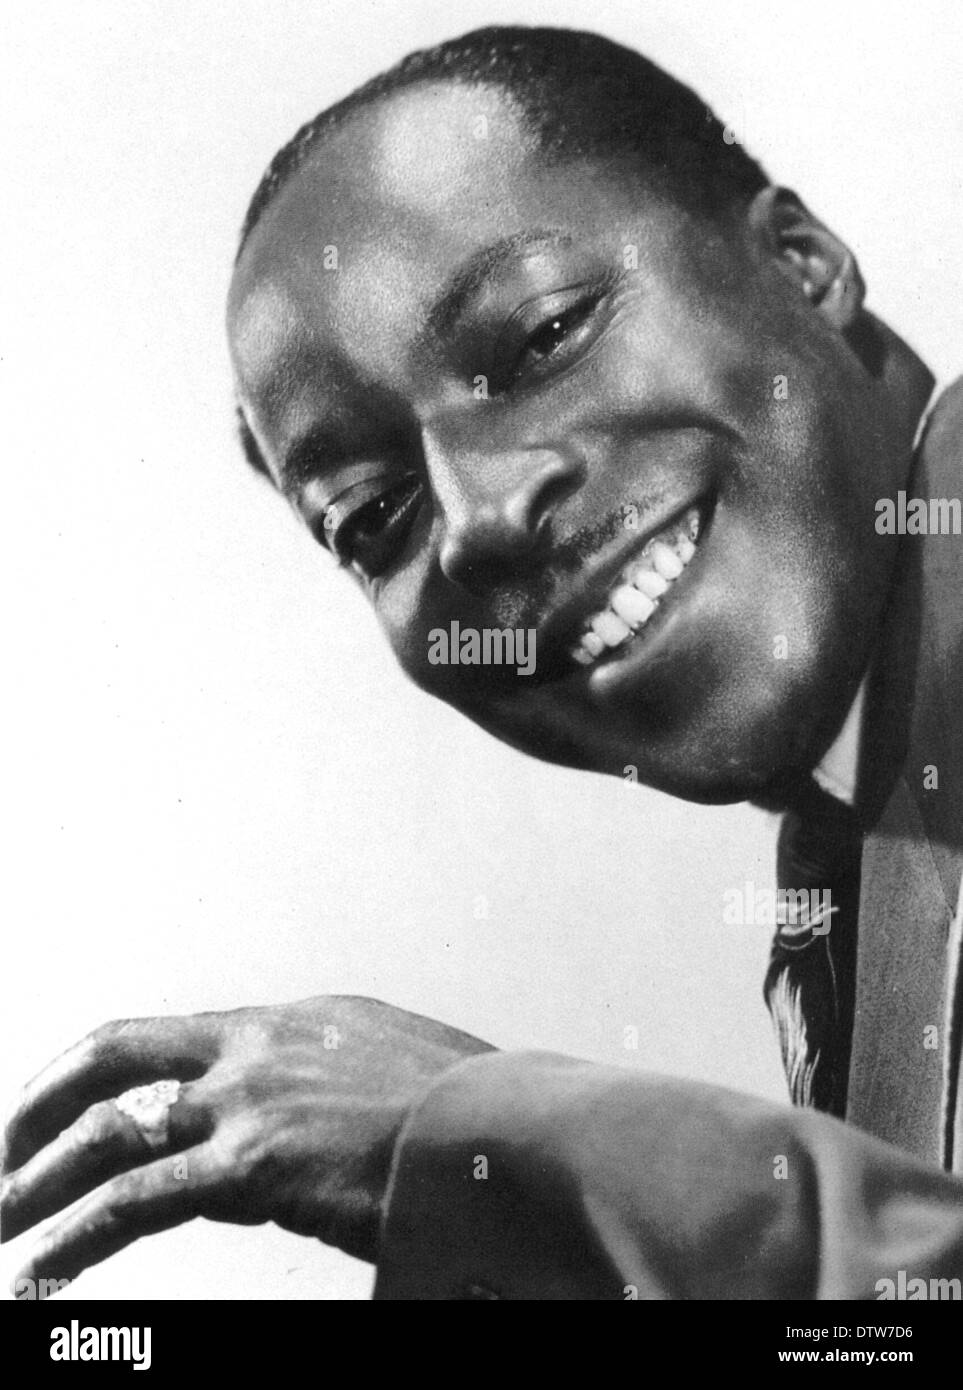 CECIL GRANT (1913-1951) US Blues singer - Stock Image